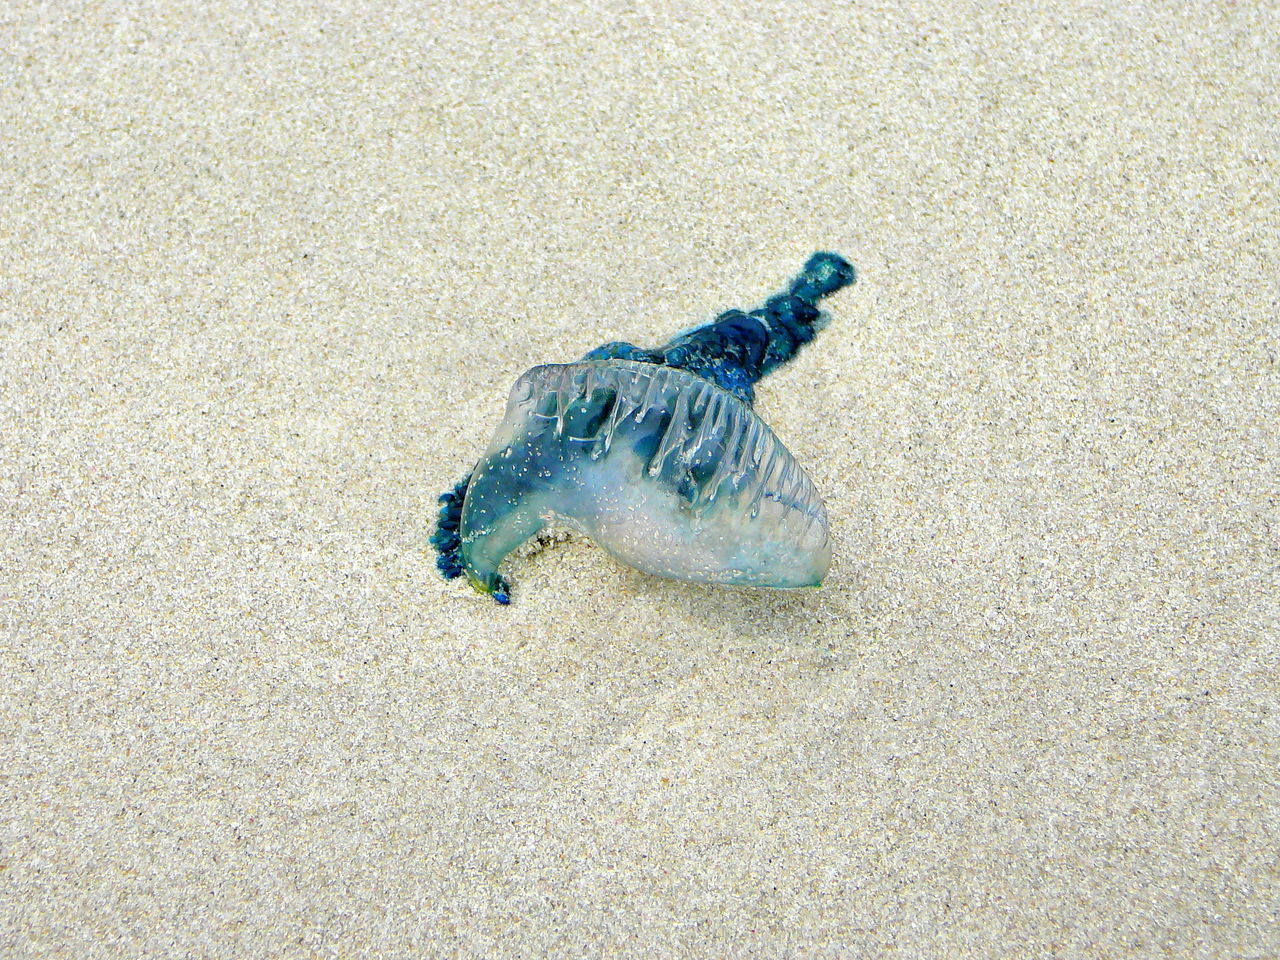 Lost Bluebottle ~ Beach Blue BlueBottle Bubble Day Low Tide Revelations Natal No People Outdoors Painful Beauty Sealife South Africa Stinger White Sand